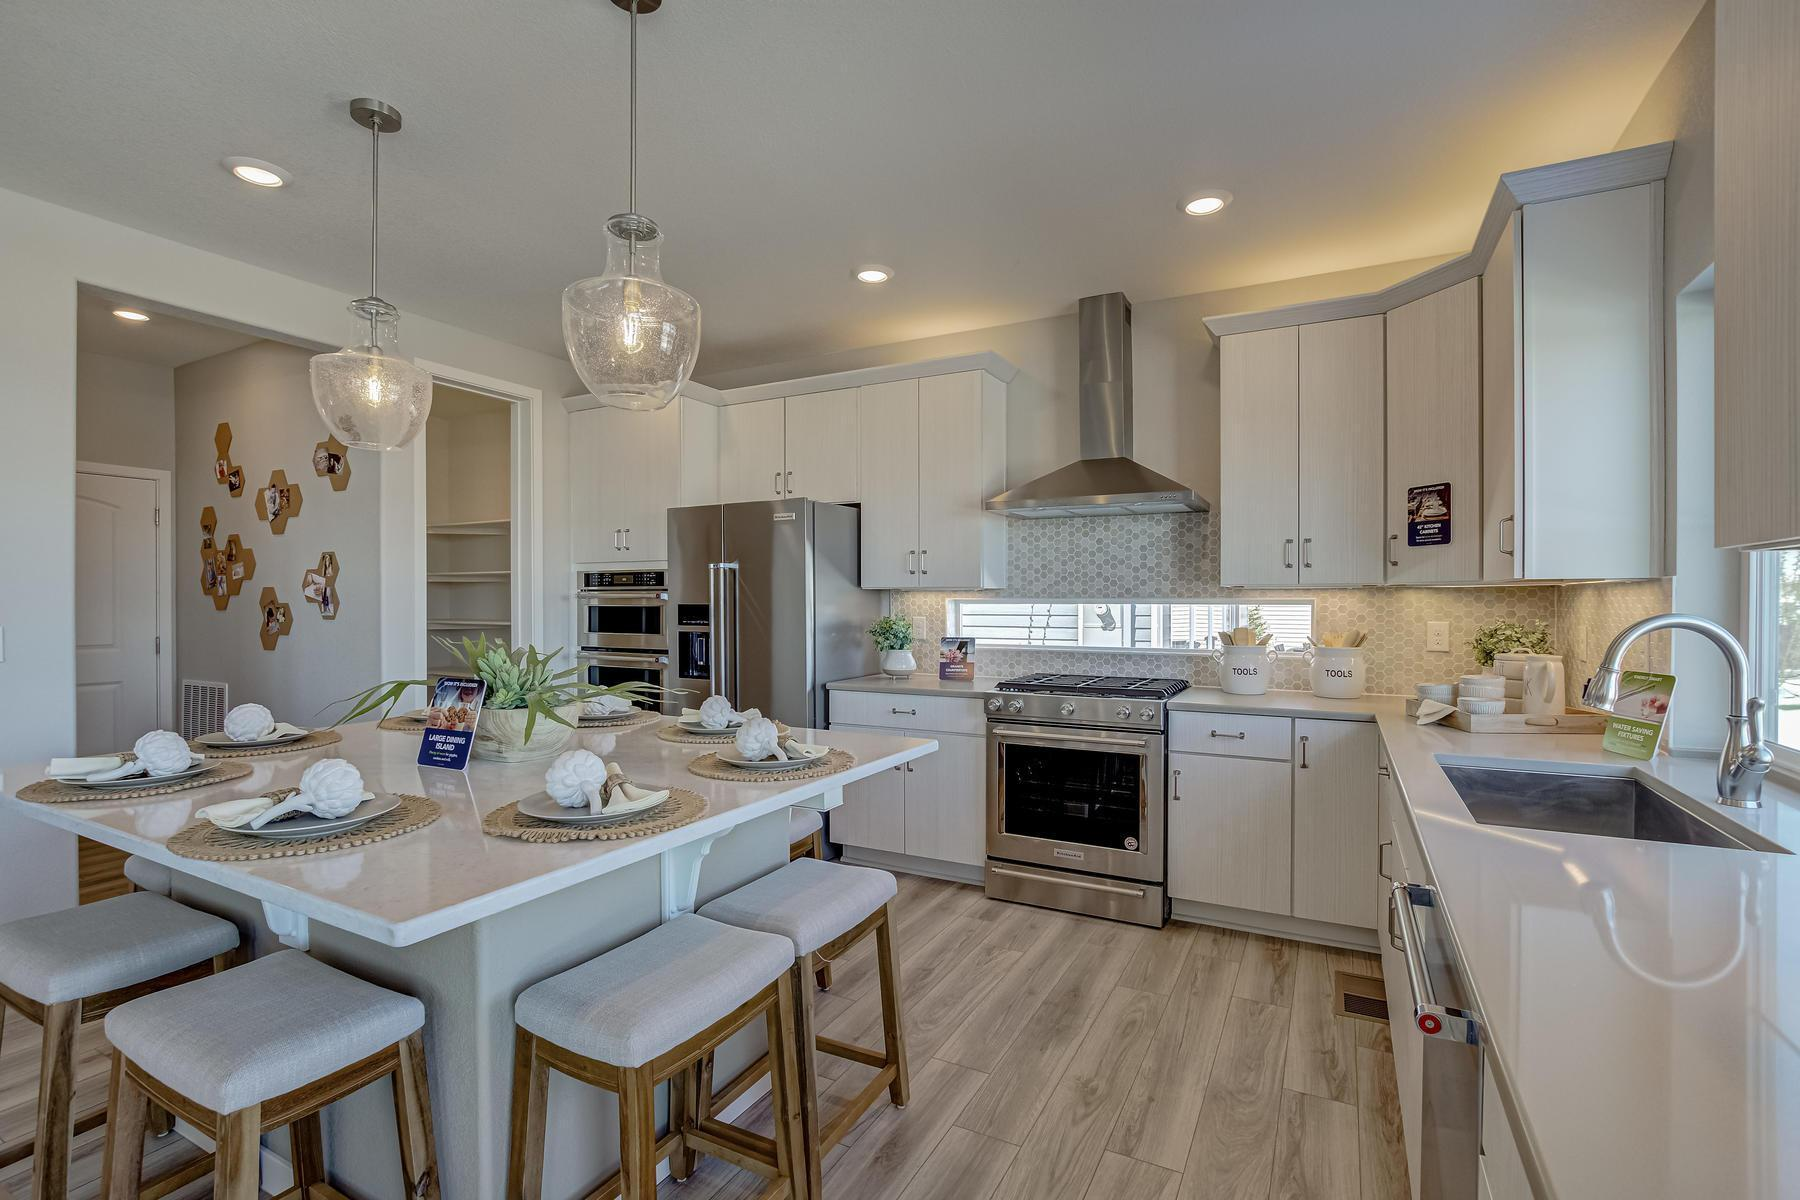 Kitchen featured in the  Branson  By Oakwood Homes in Denver, CO